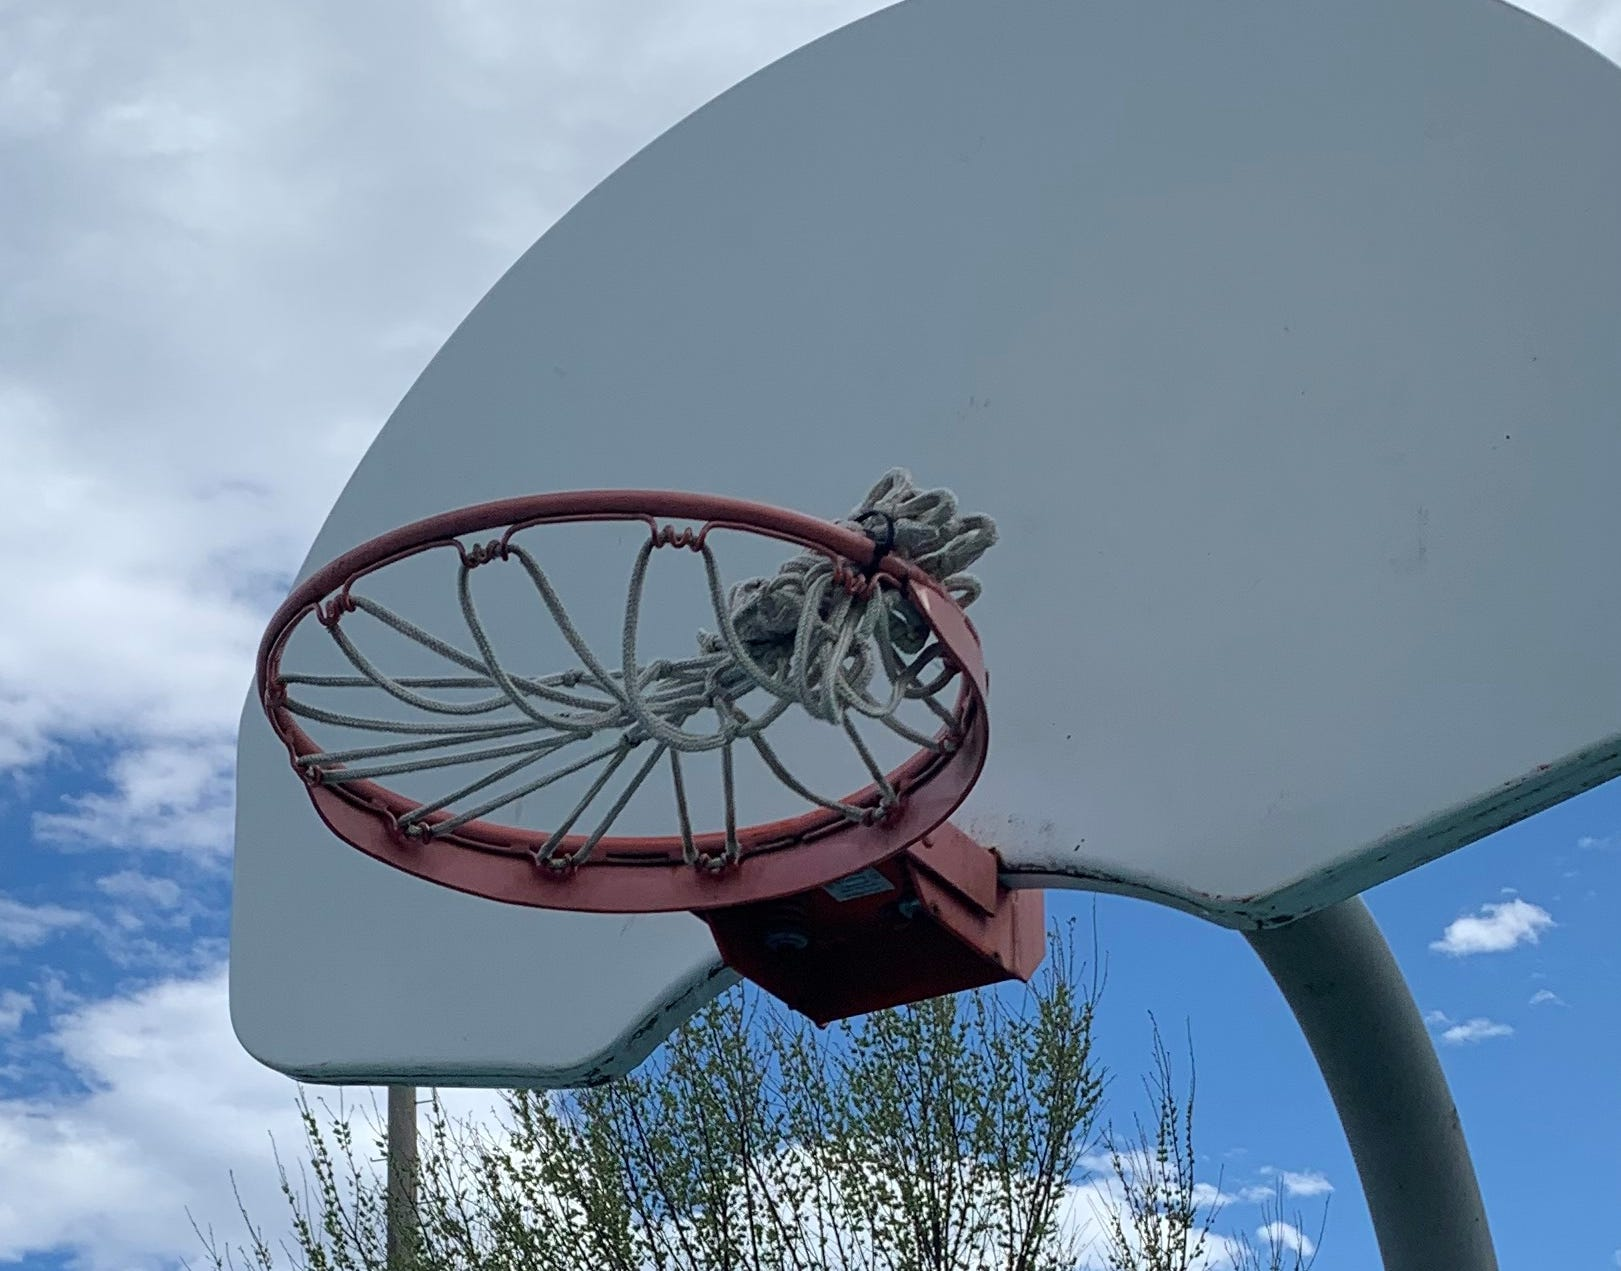 Basketball Rims Removed At Many Public Courts During Coronavirus